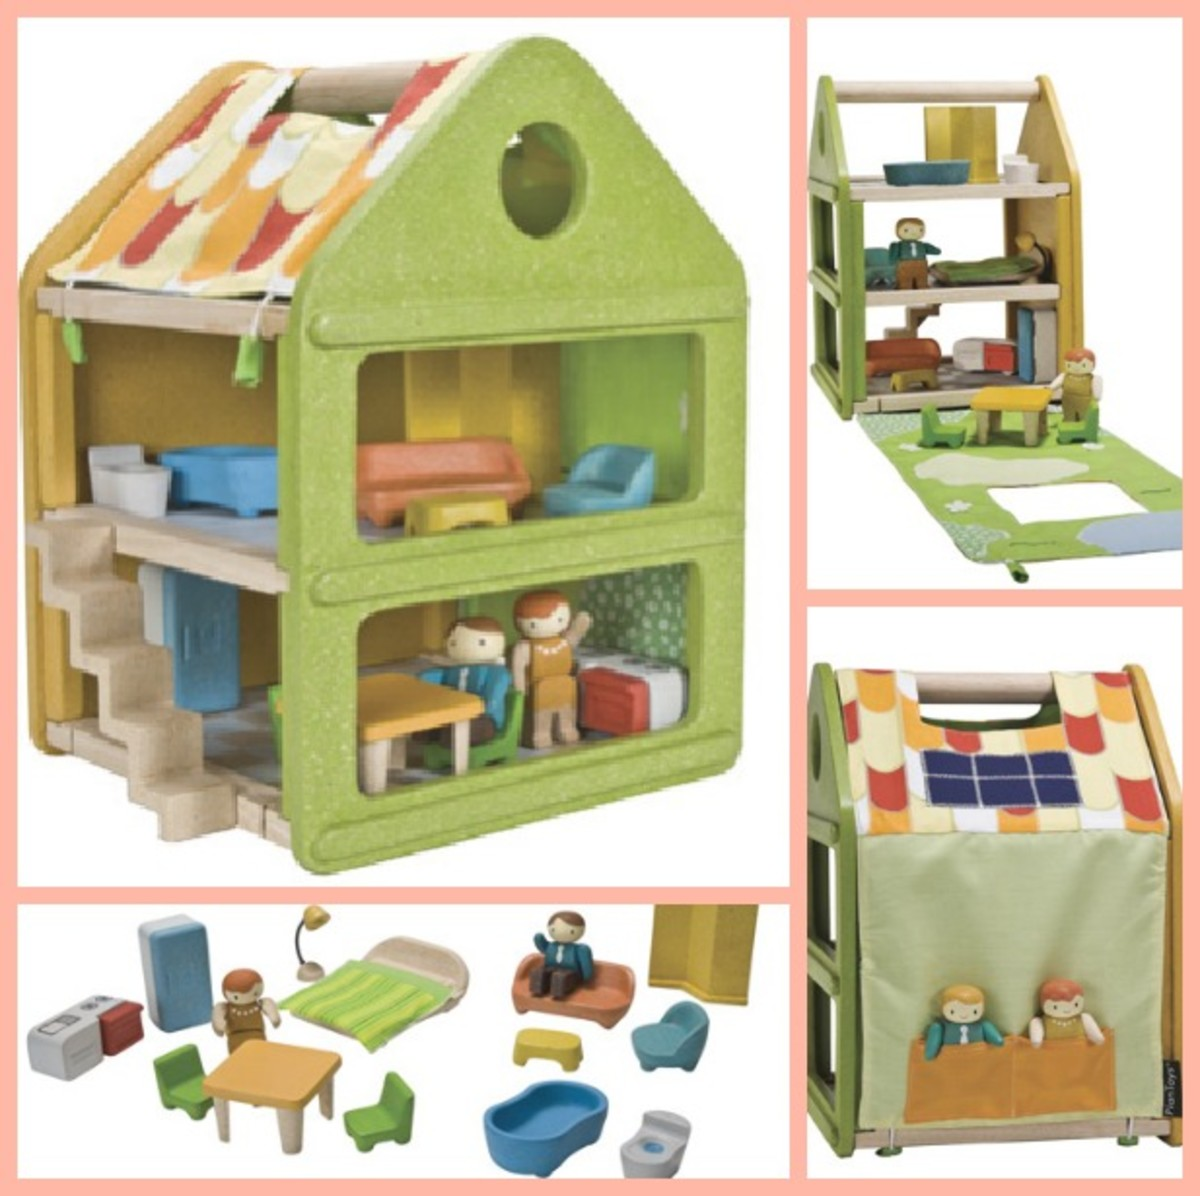 Woodworking playhouse plan toys PDF Free Download